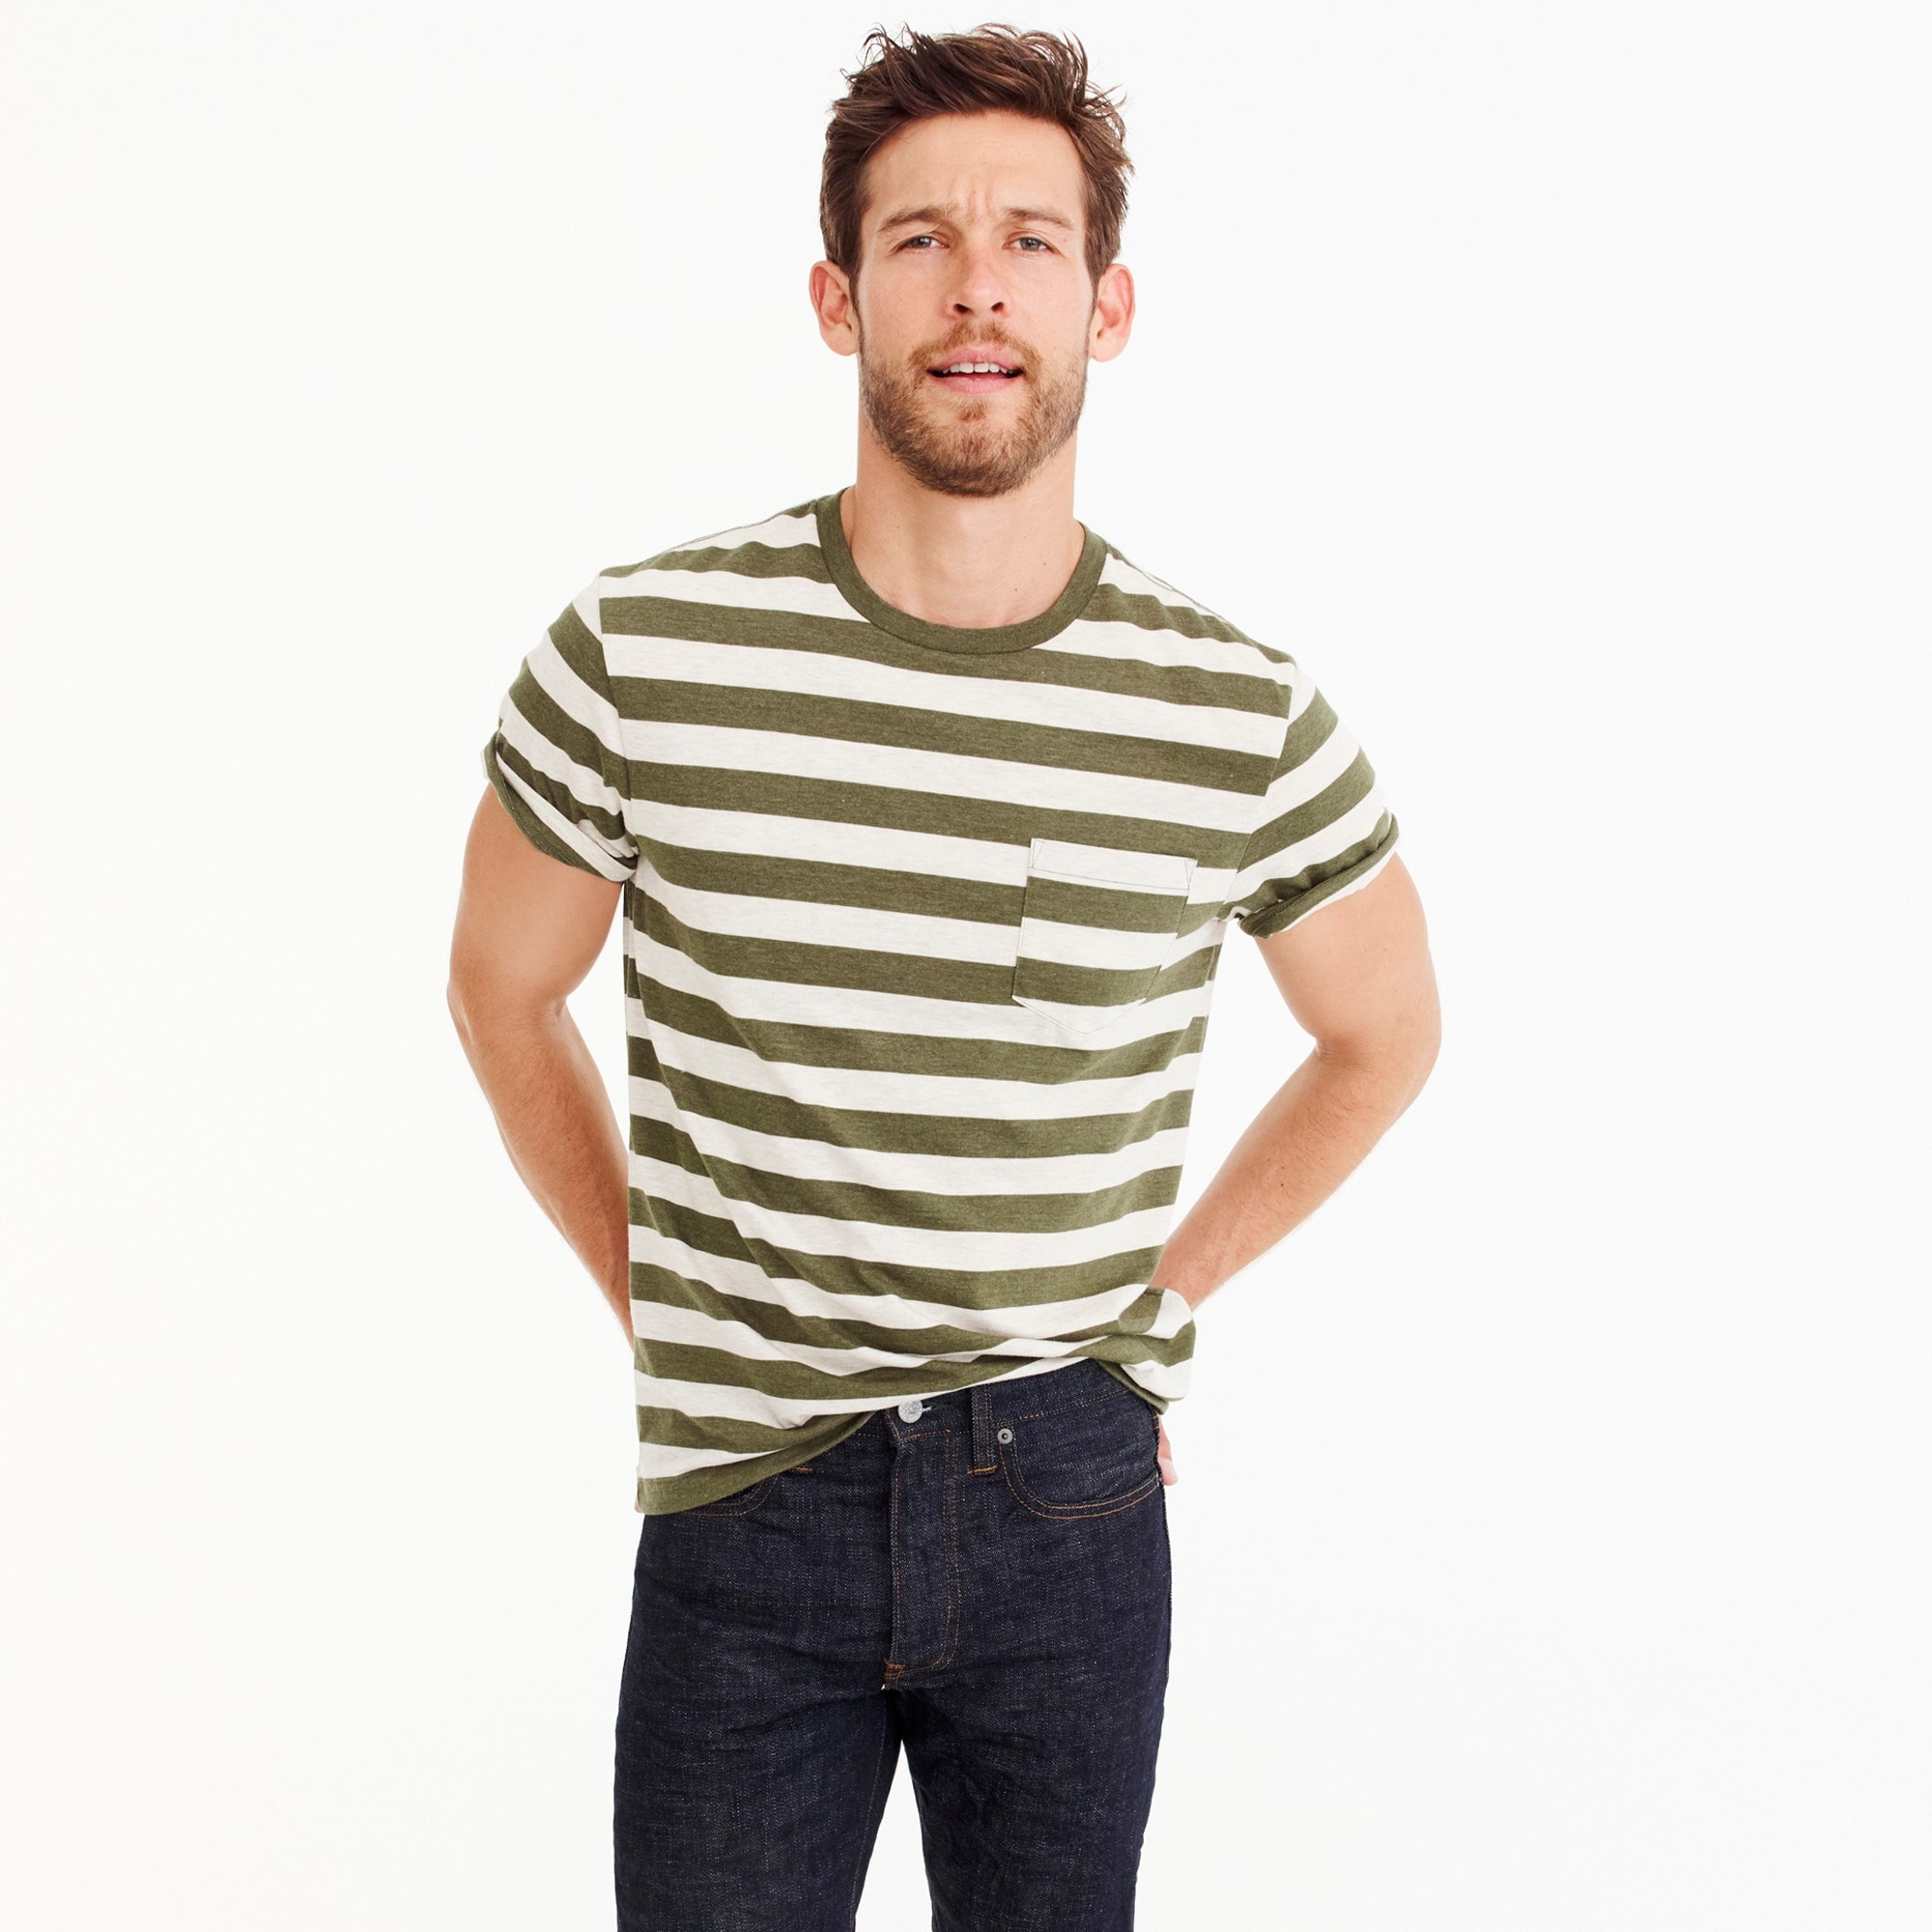 Tall J.Crew Mercantile Broken-in T-shirt in Bedford stripe